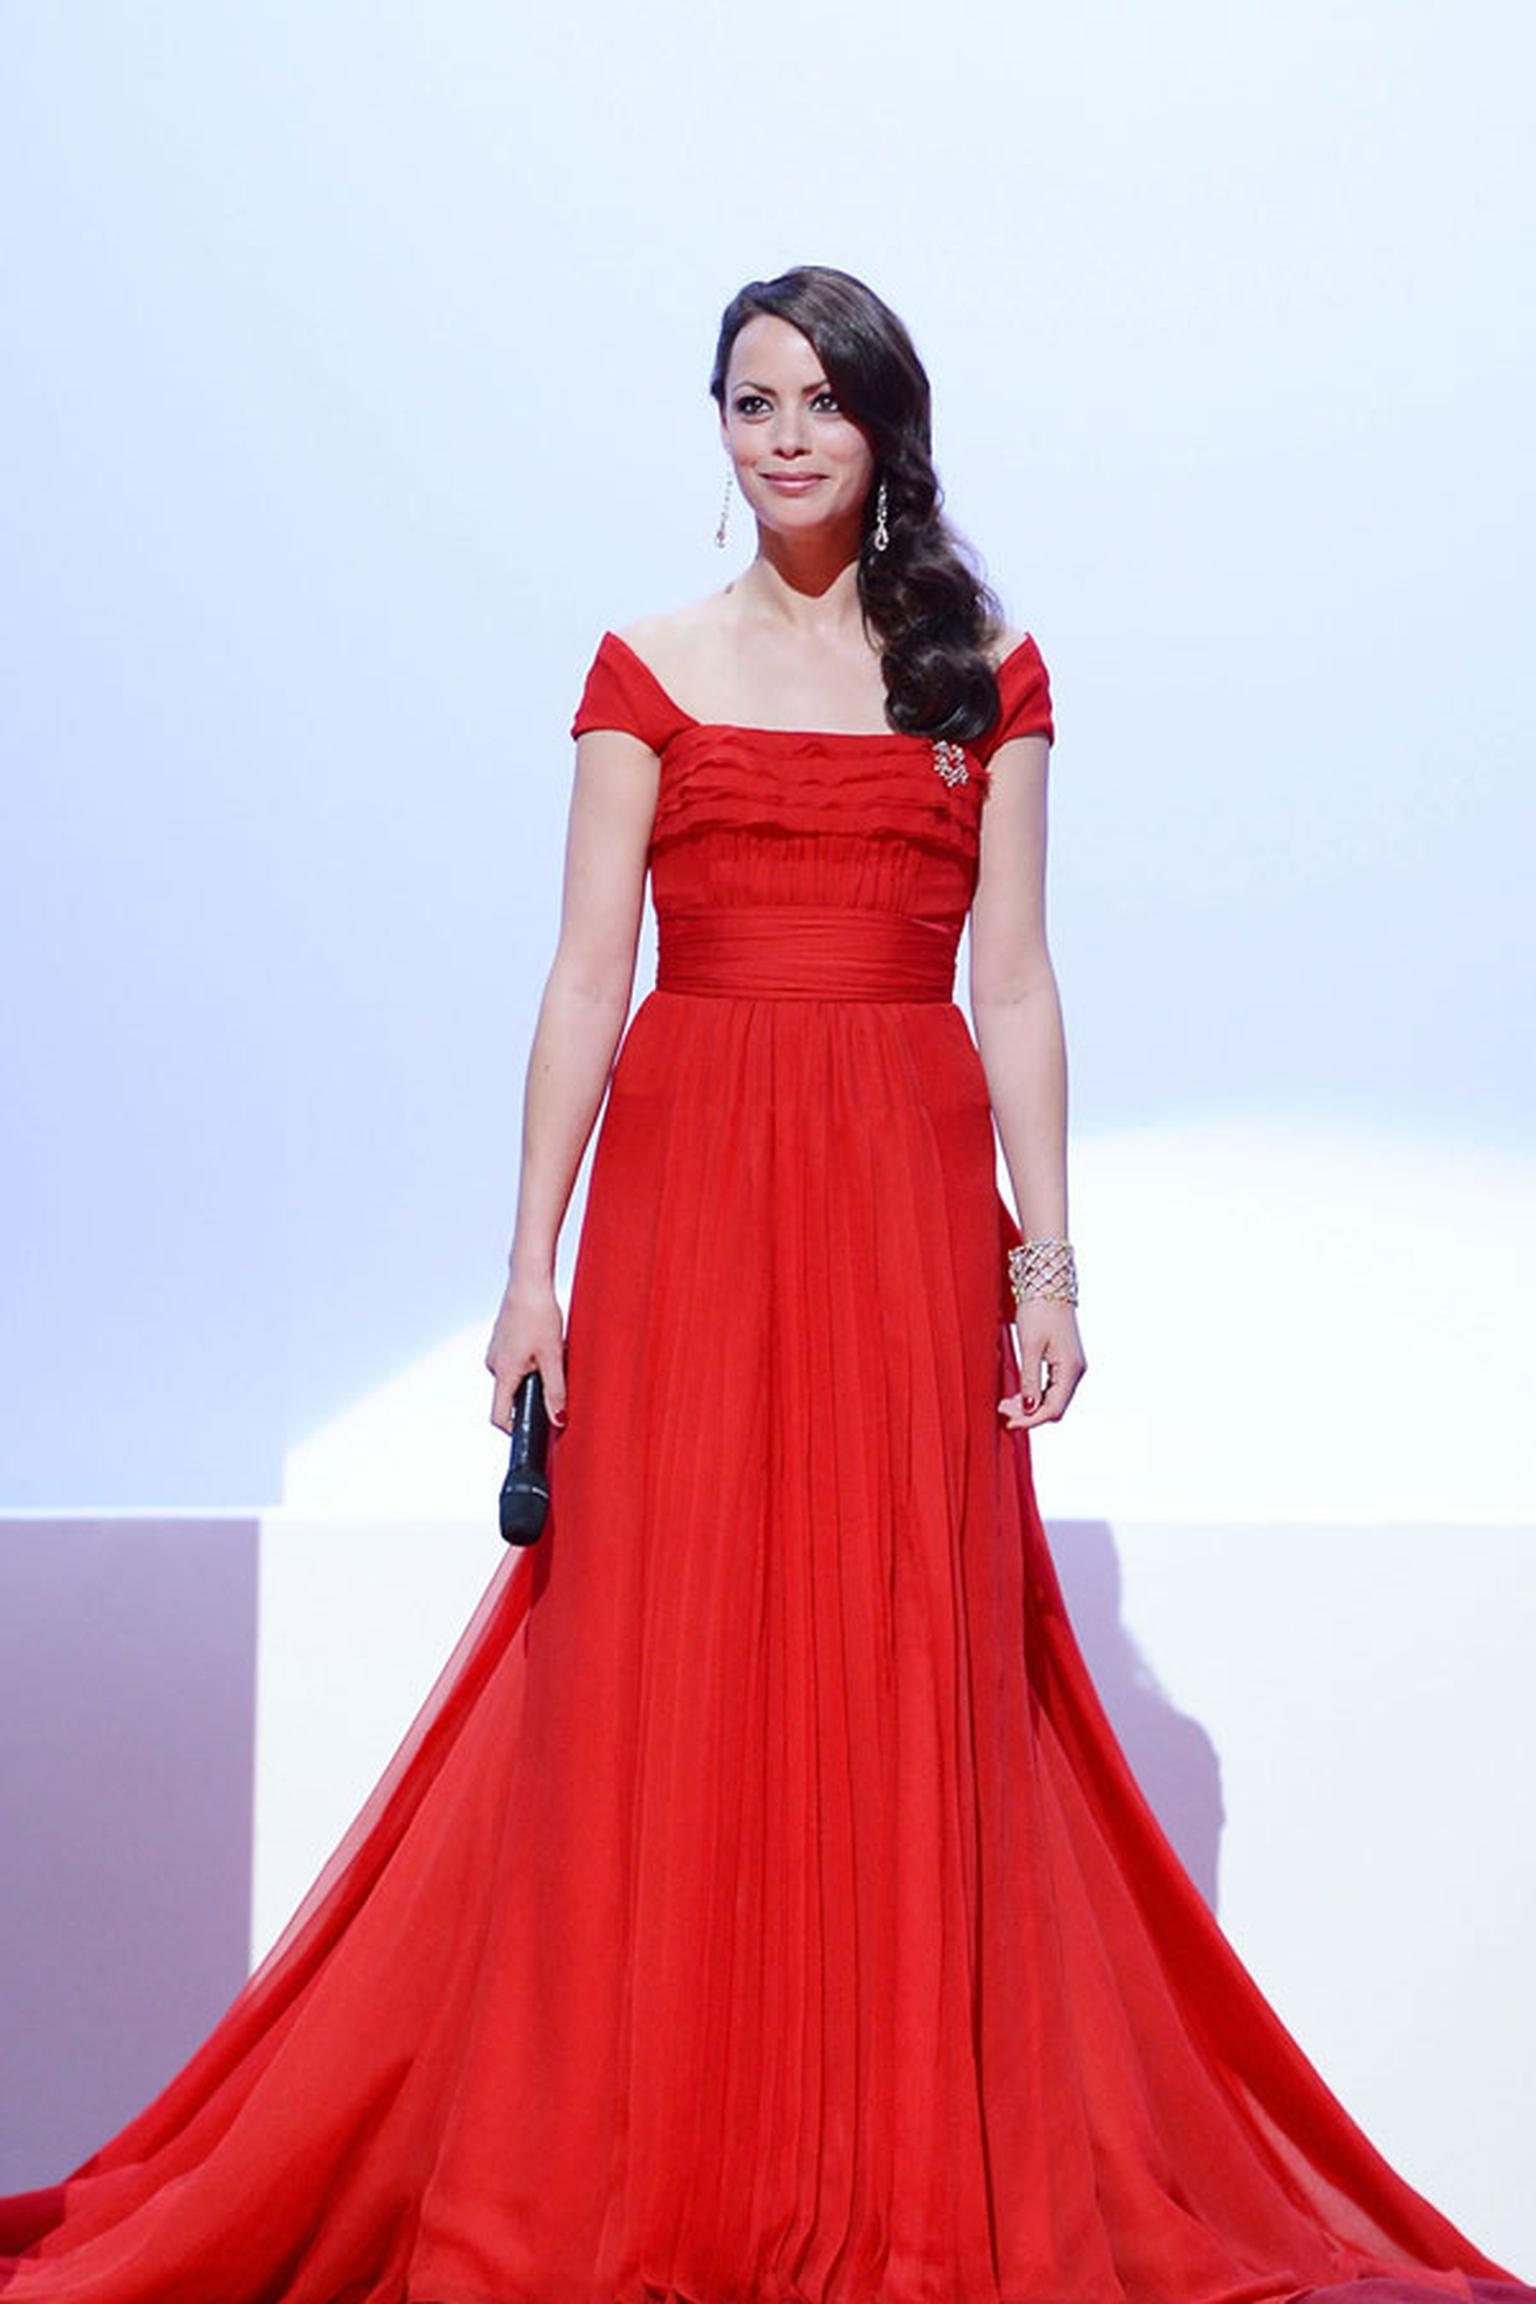 Berenice_Bejo_Louis-Vuitton_dress_and-Chopard_Jewellery.jpg